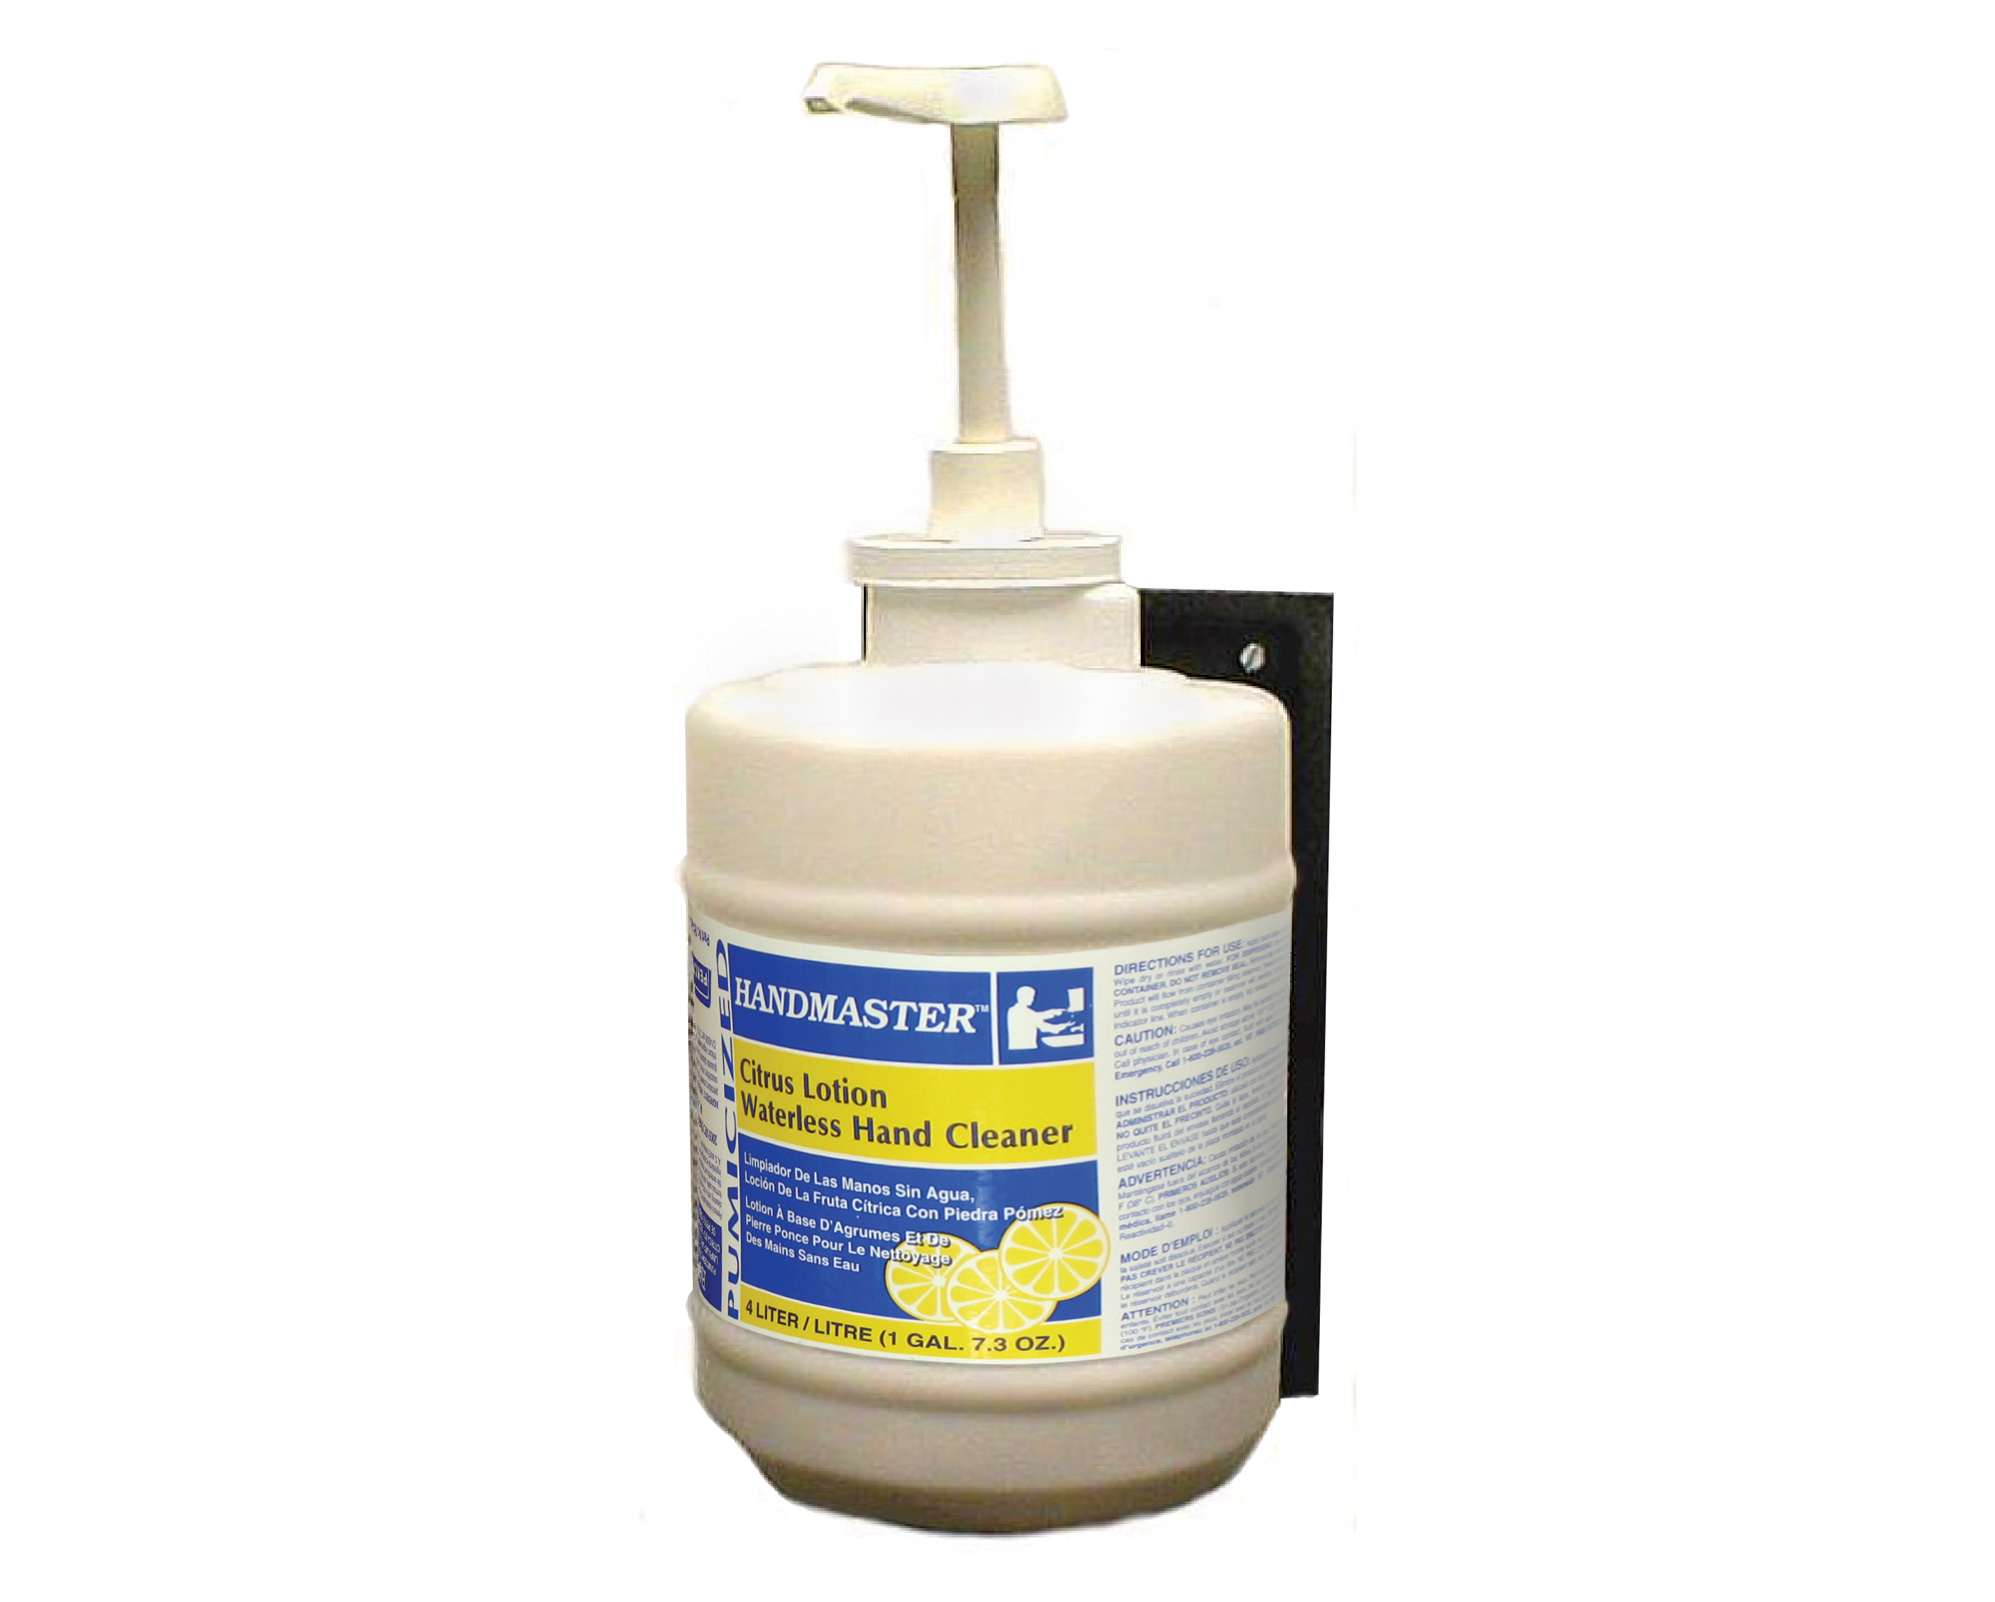 Pumicized Waterless Grit Hand Cleaner/Dispensers